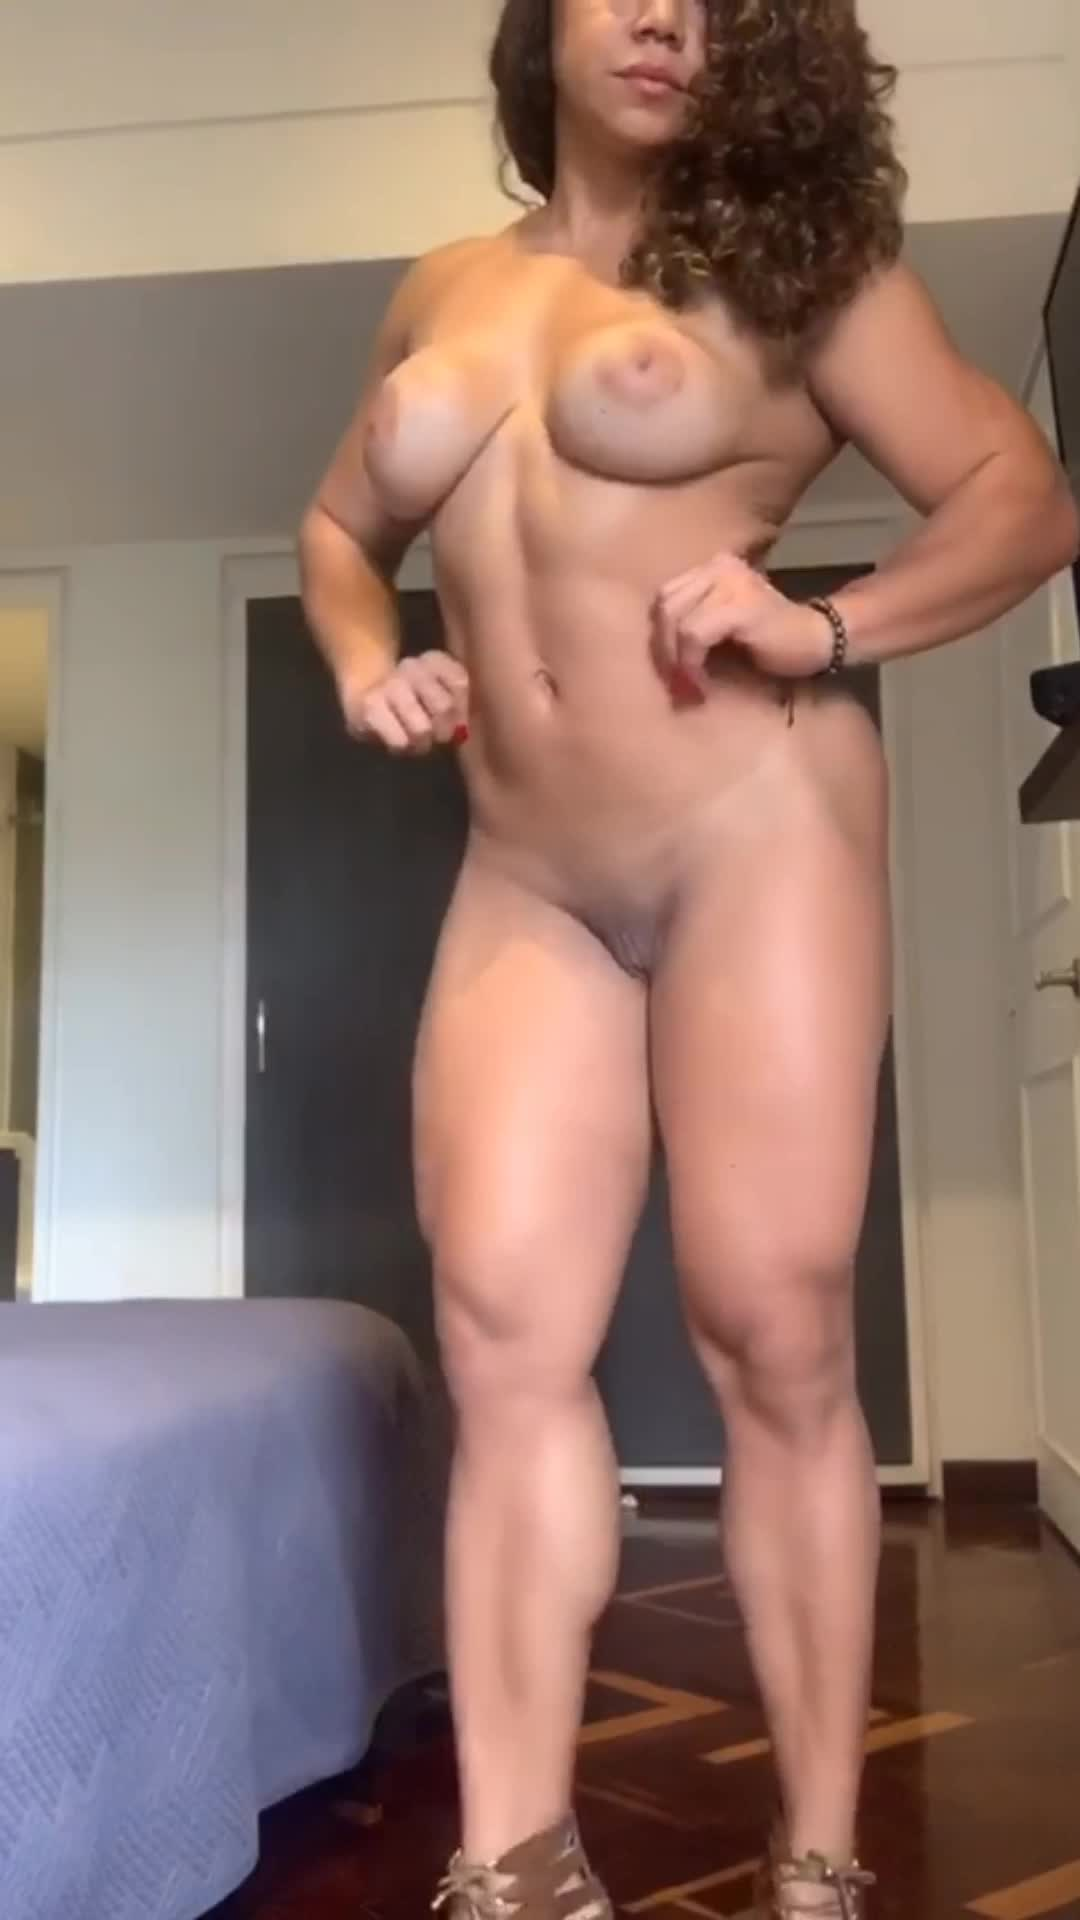 the legs queen, and your new fantasy